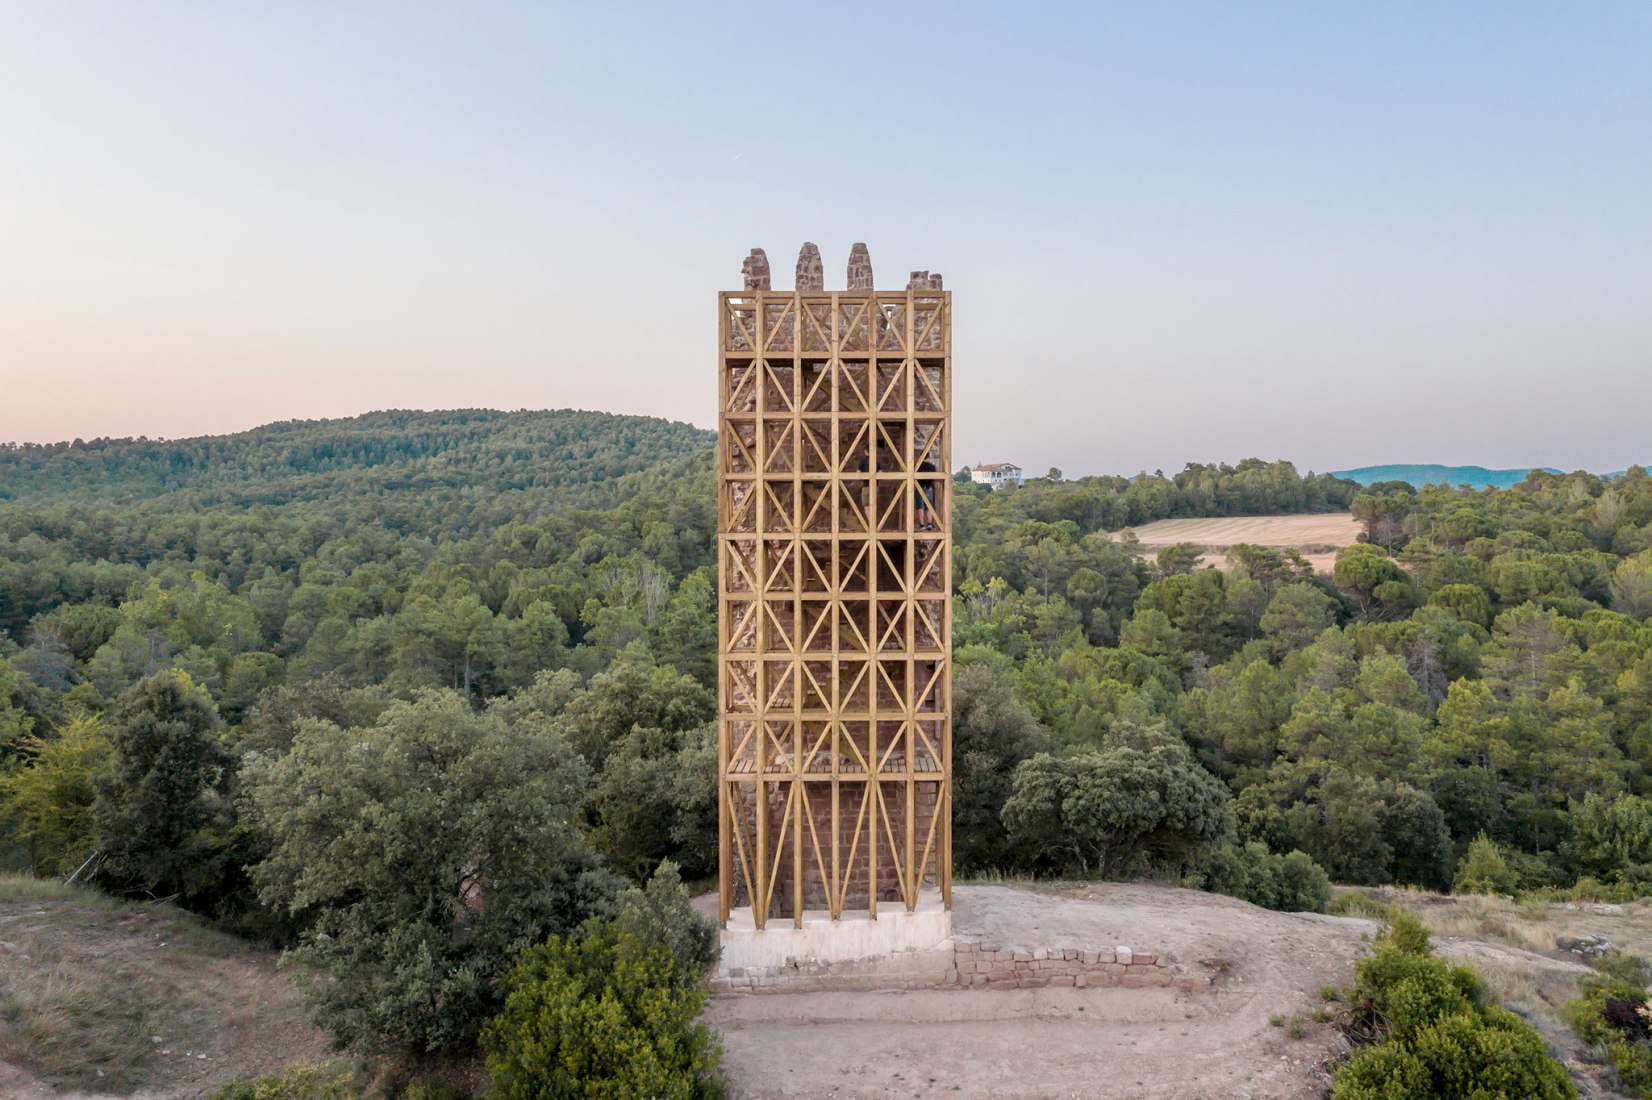 Merola's Tower by Carles Enrich. Photograph by Adrià Goula